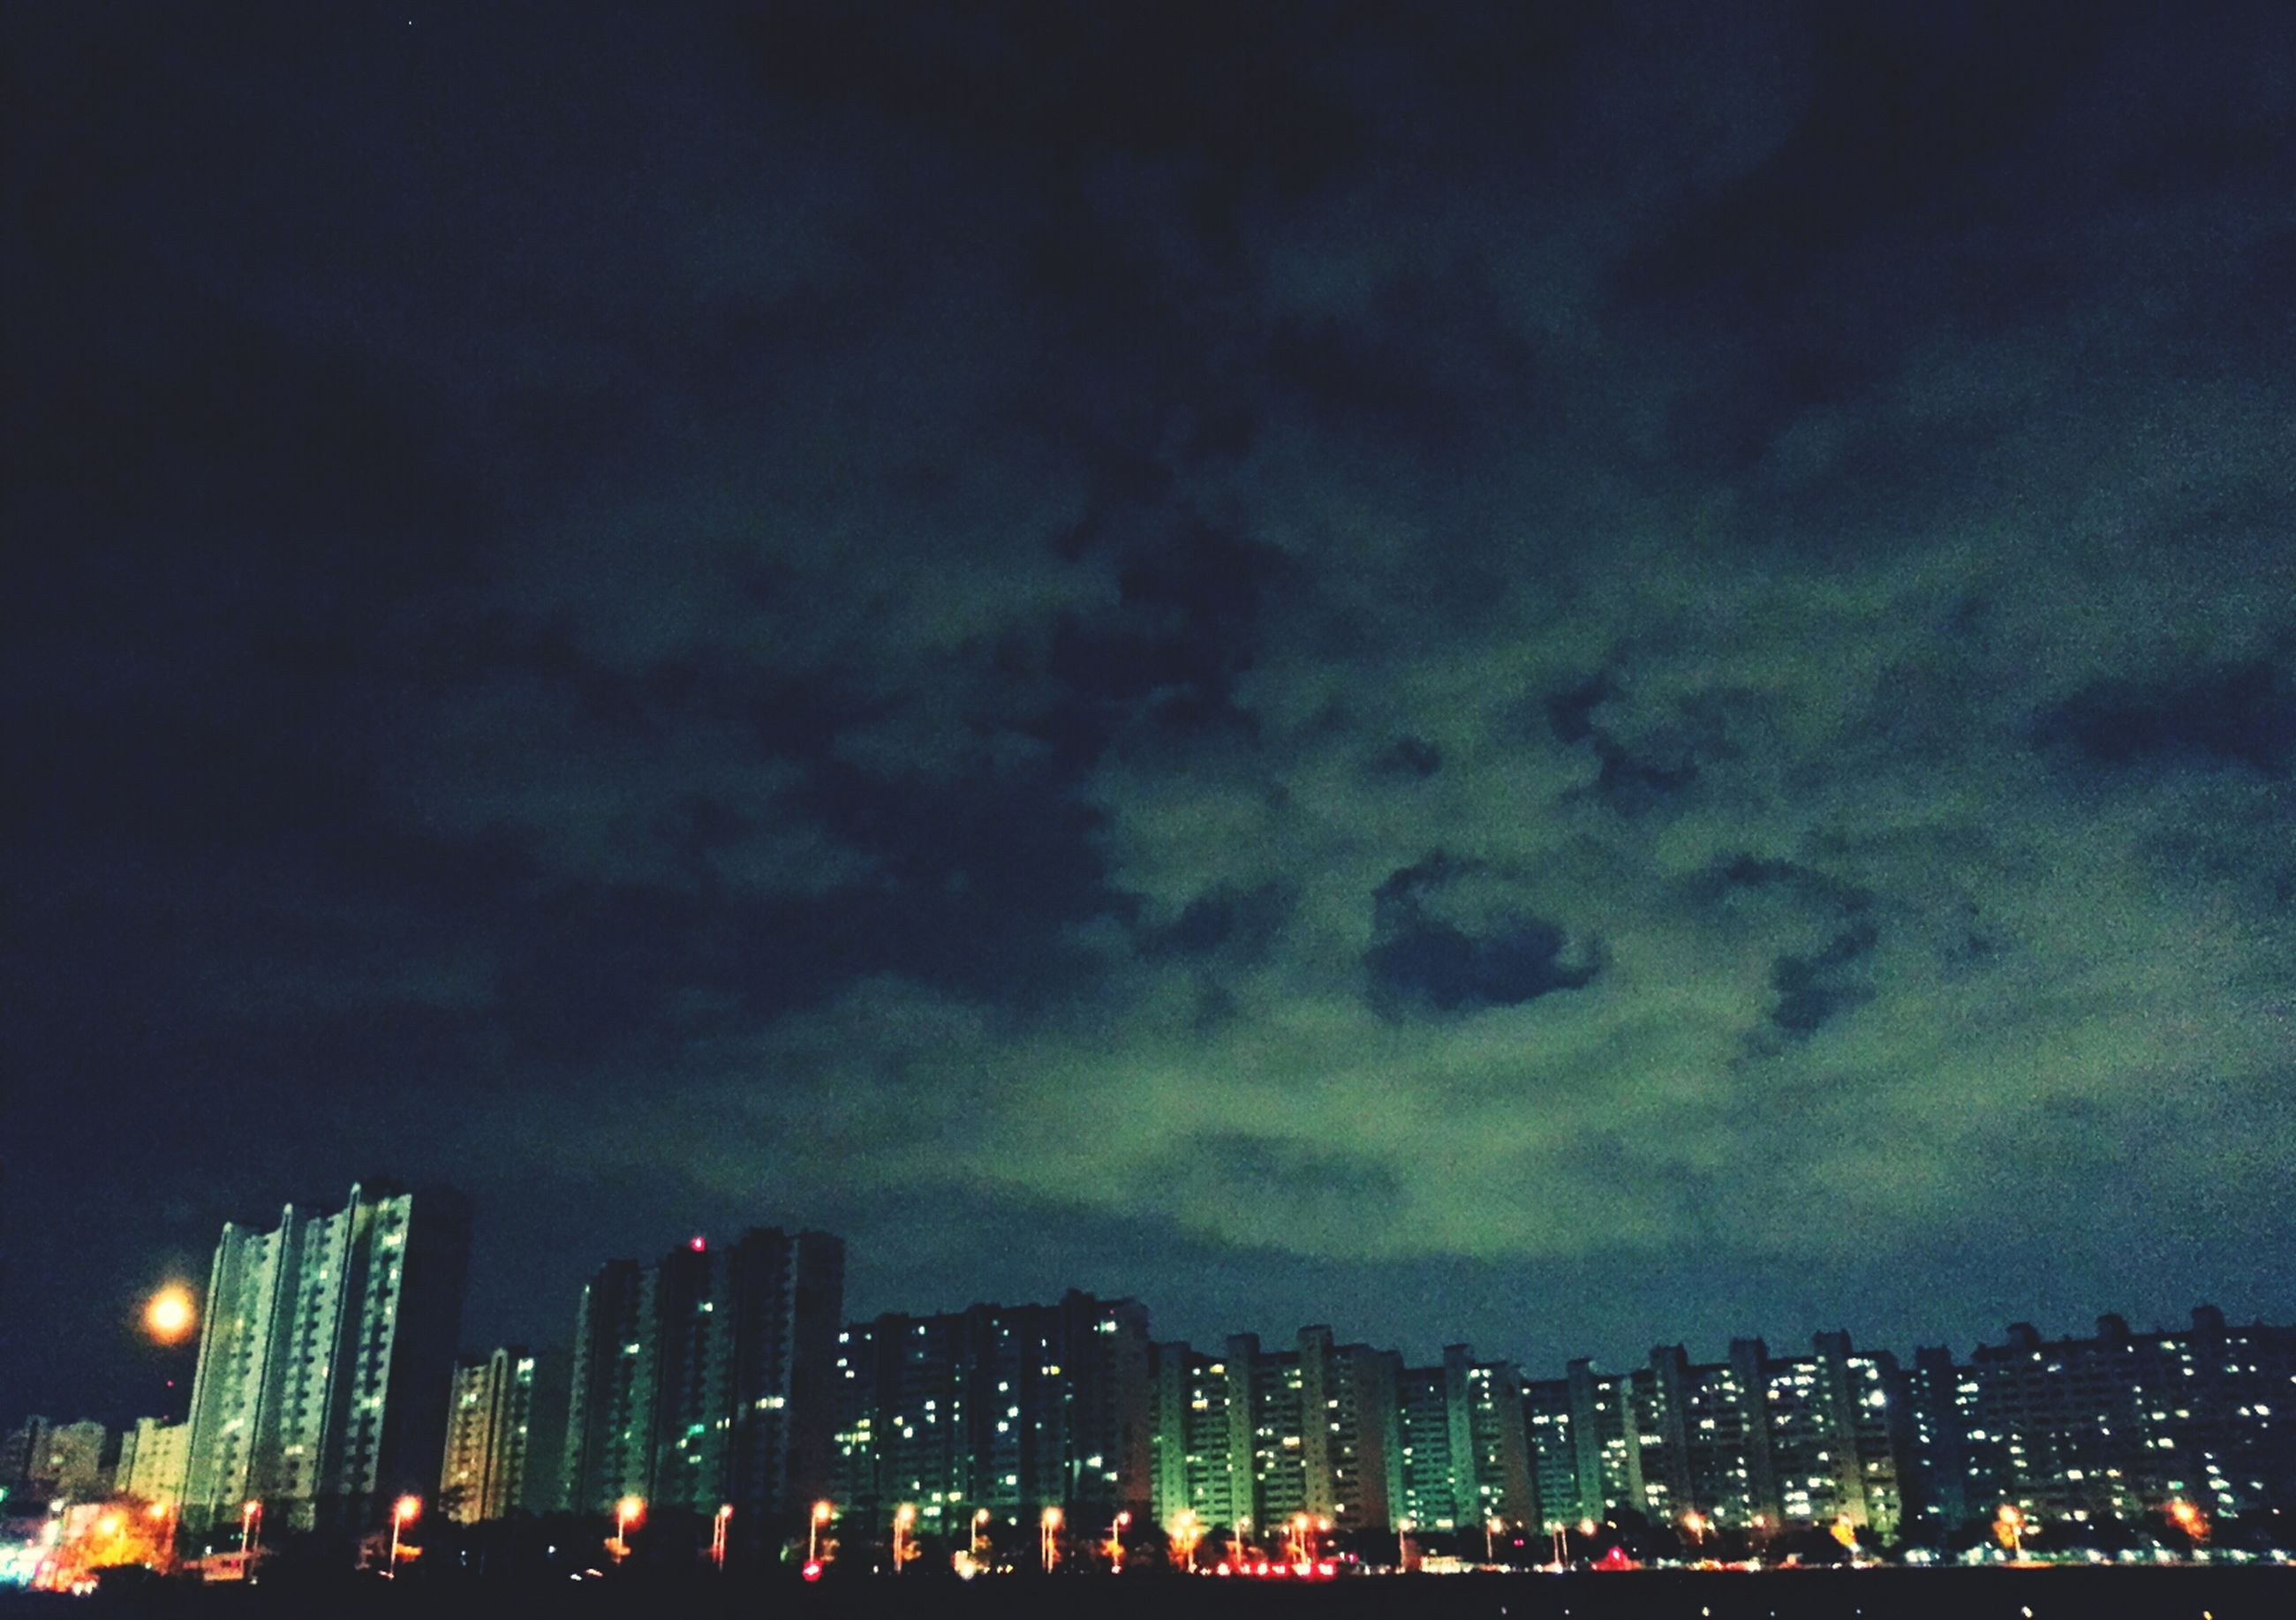 illuminated, night, cityscape, city, building exterior, architecture, built structure, sky, skyscraper, crowded, urban skyline, cloud - sky, city life, residential district, modern, residential building, lightning, storm cloud, weather, outdoors